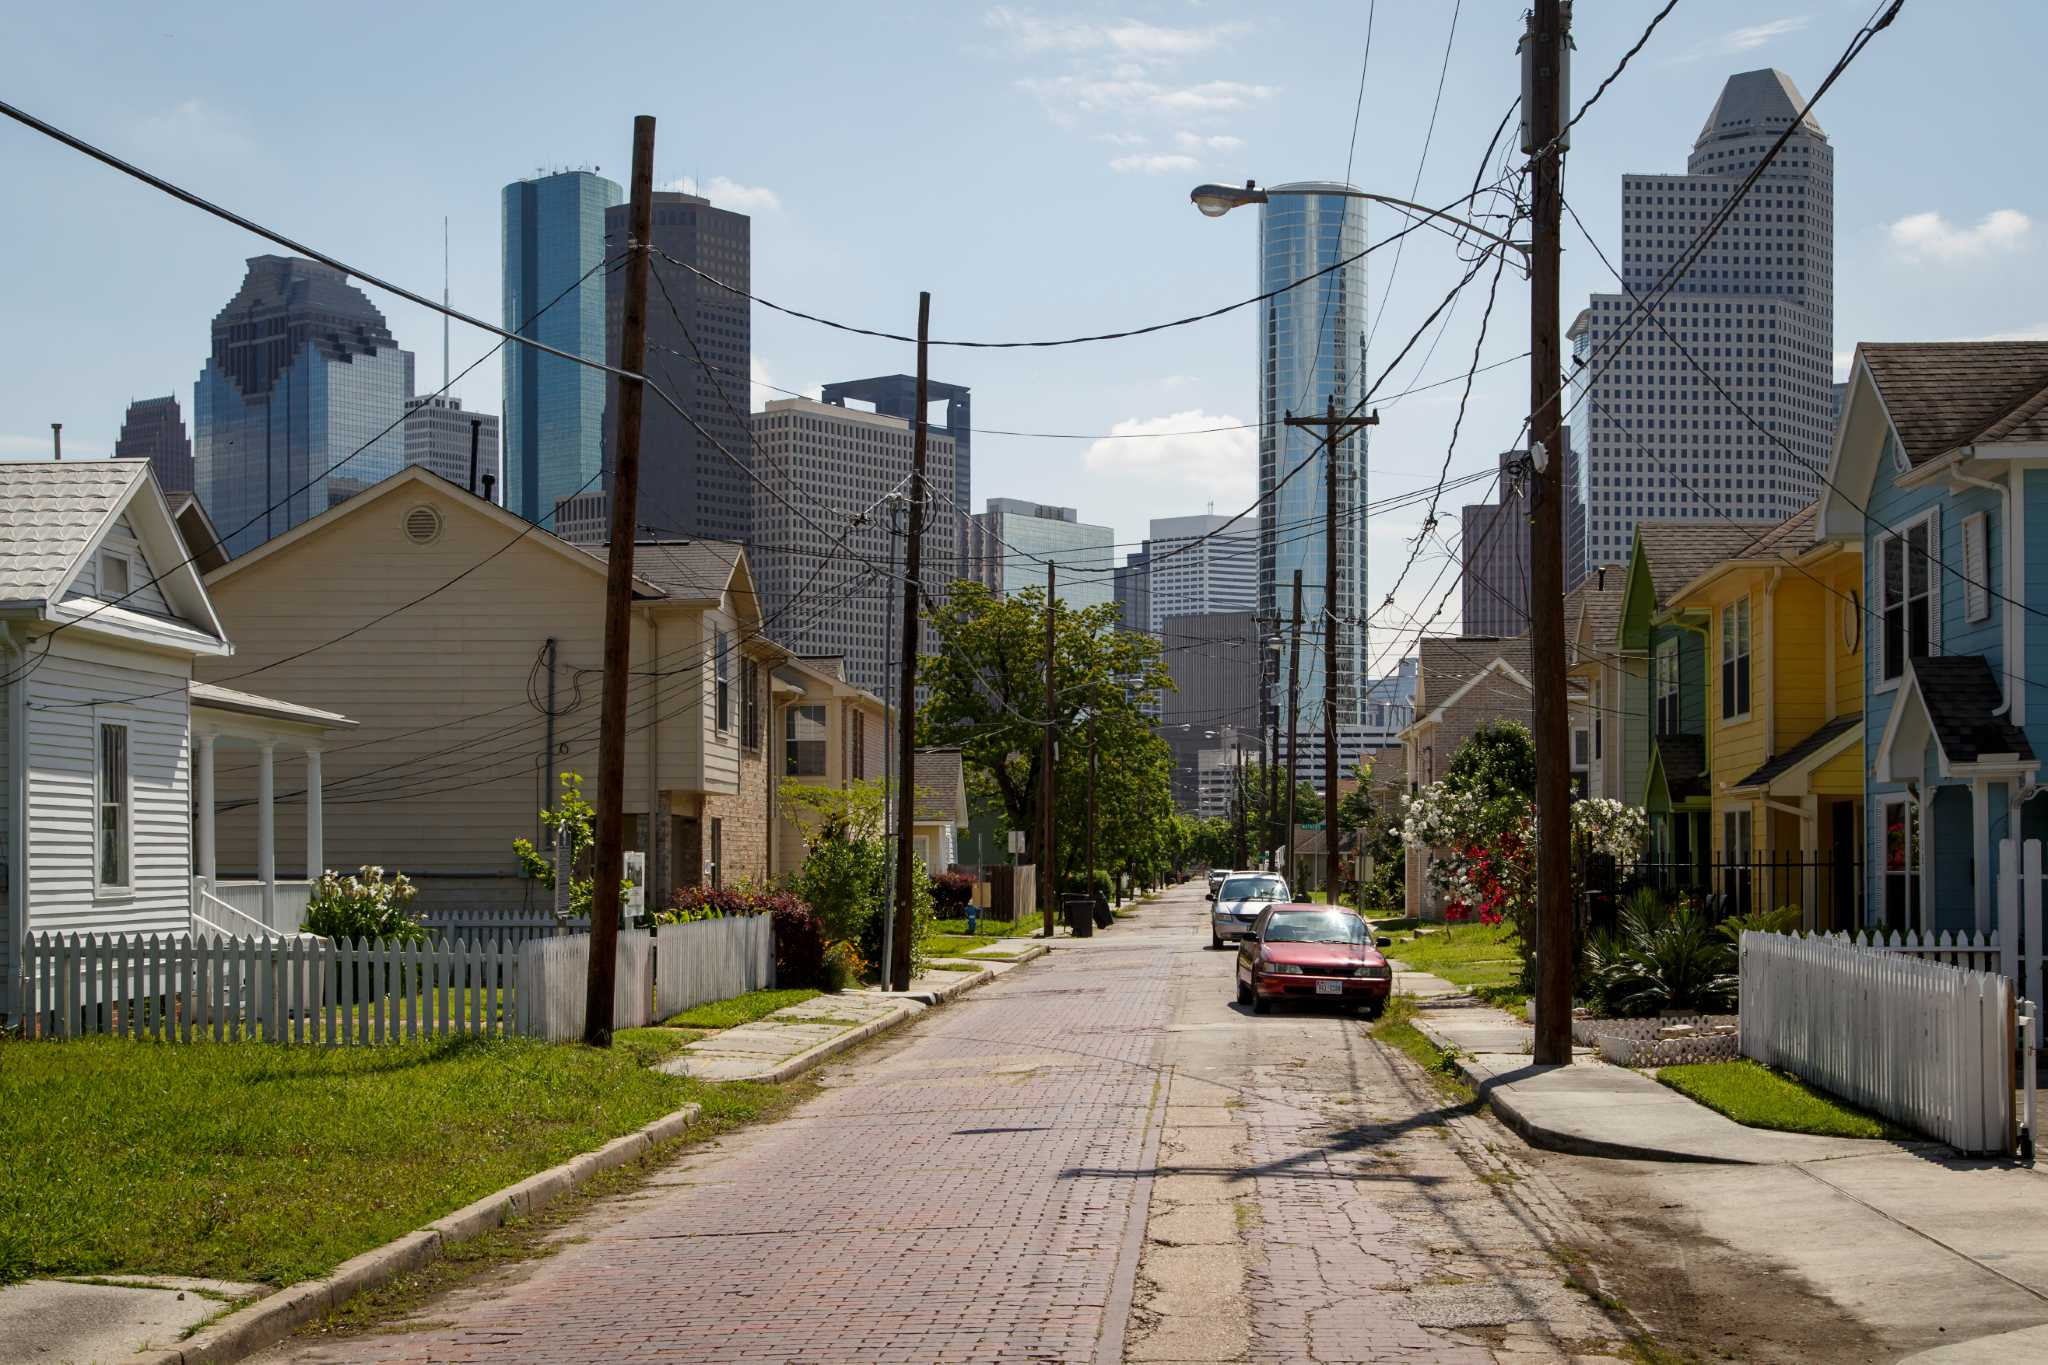 Study: Four of the fastest-gentrified neighborhoods since 2000 are in Texas, two are in Houston